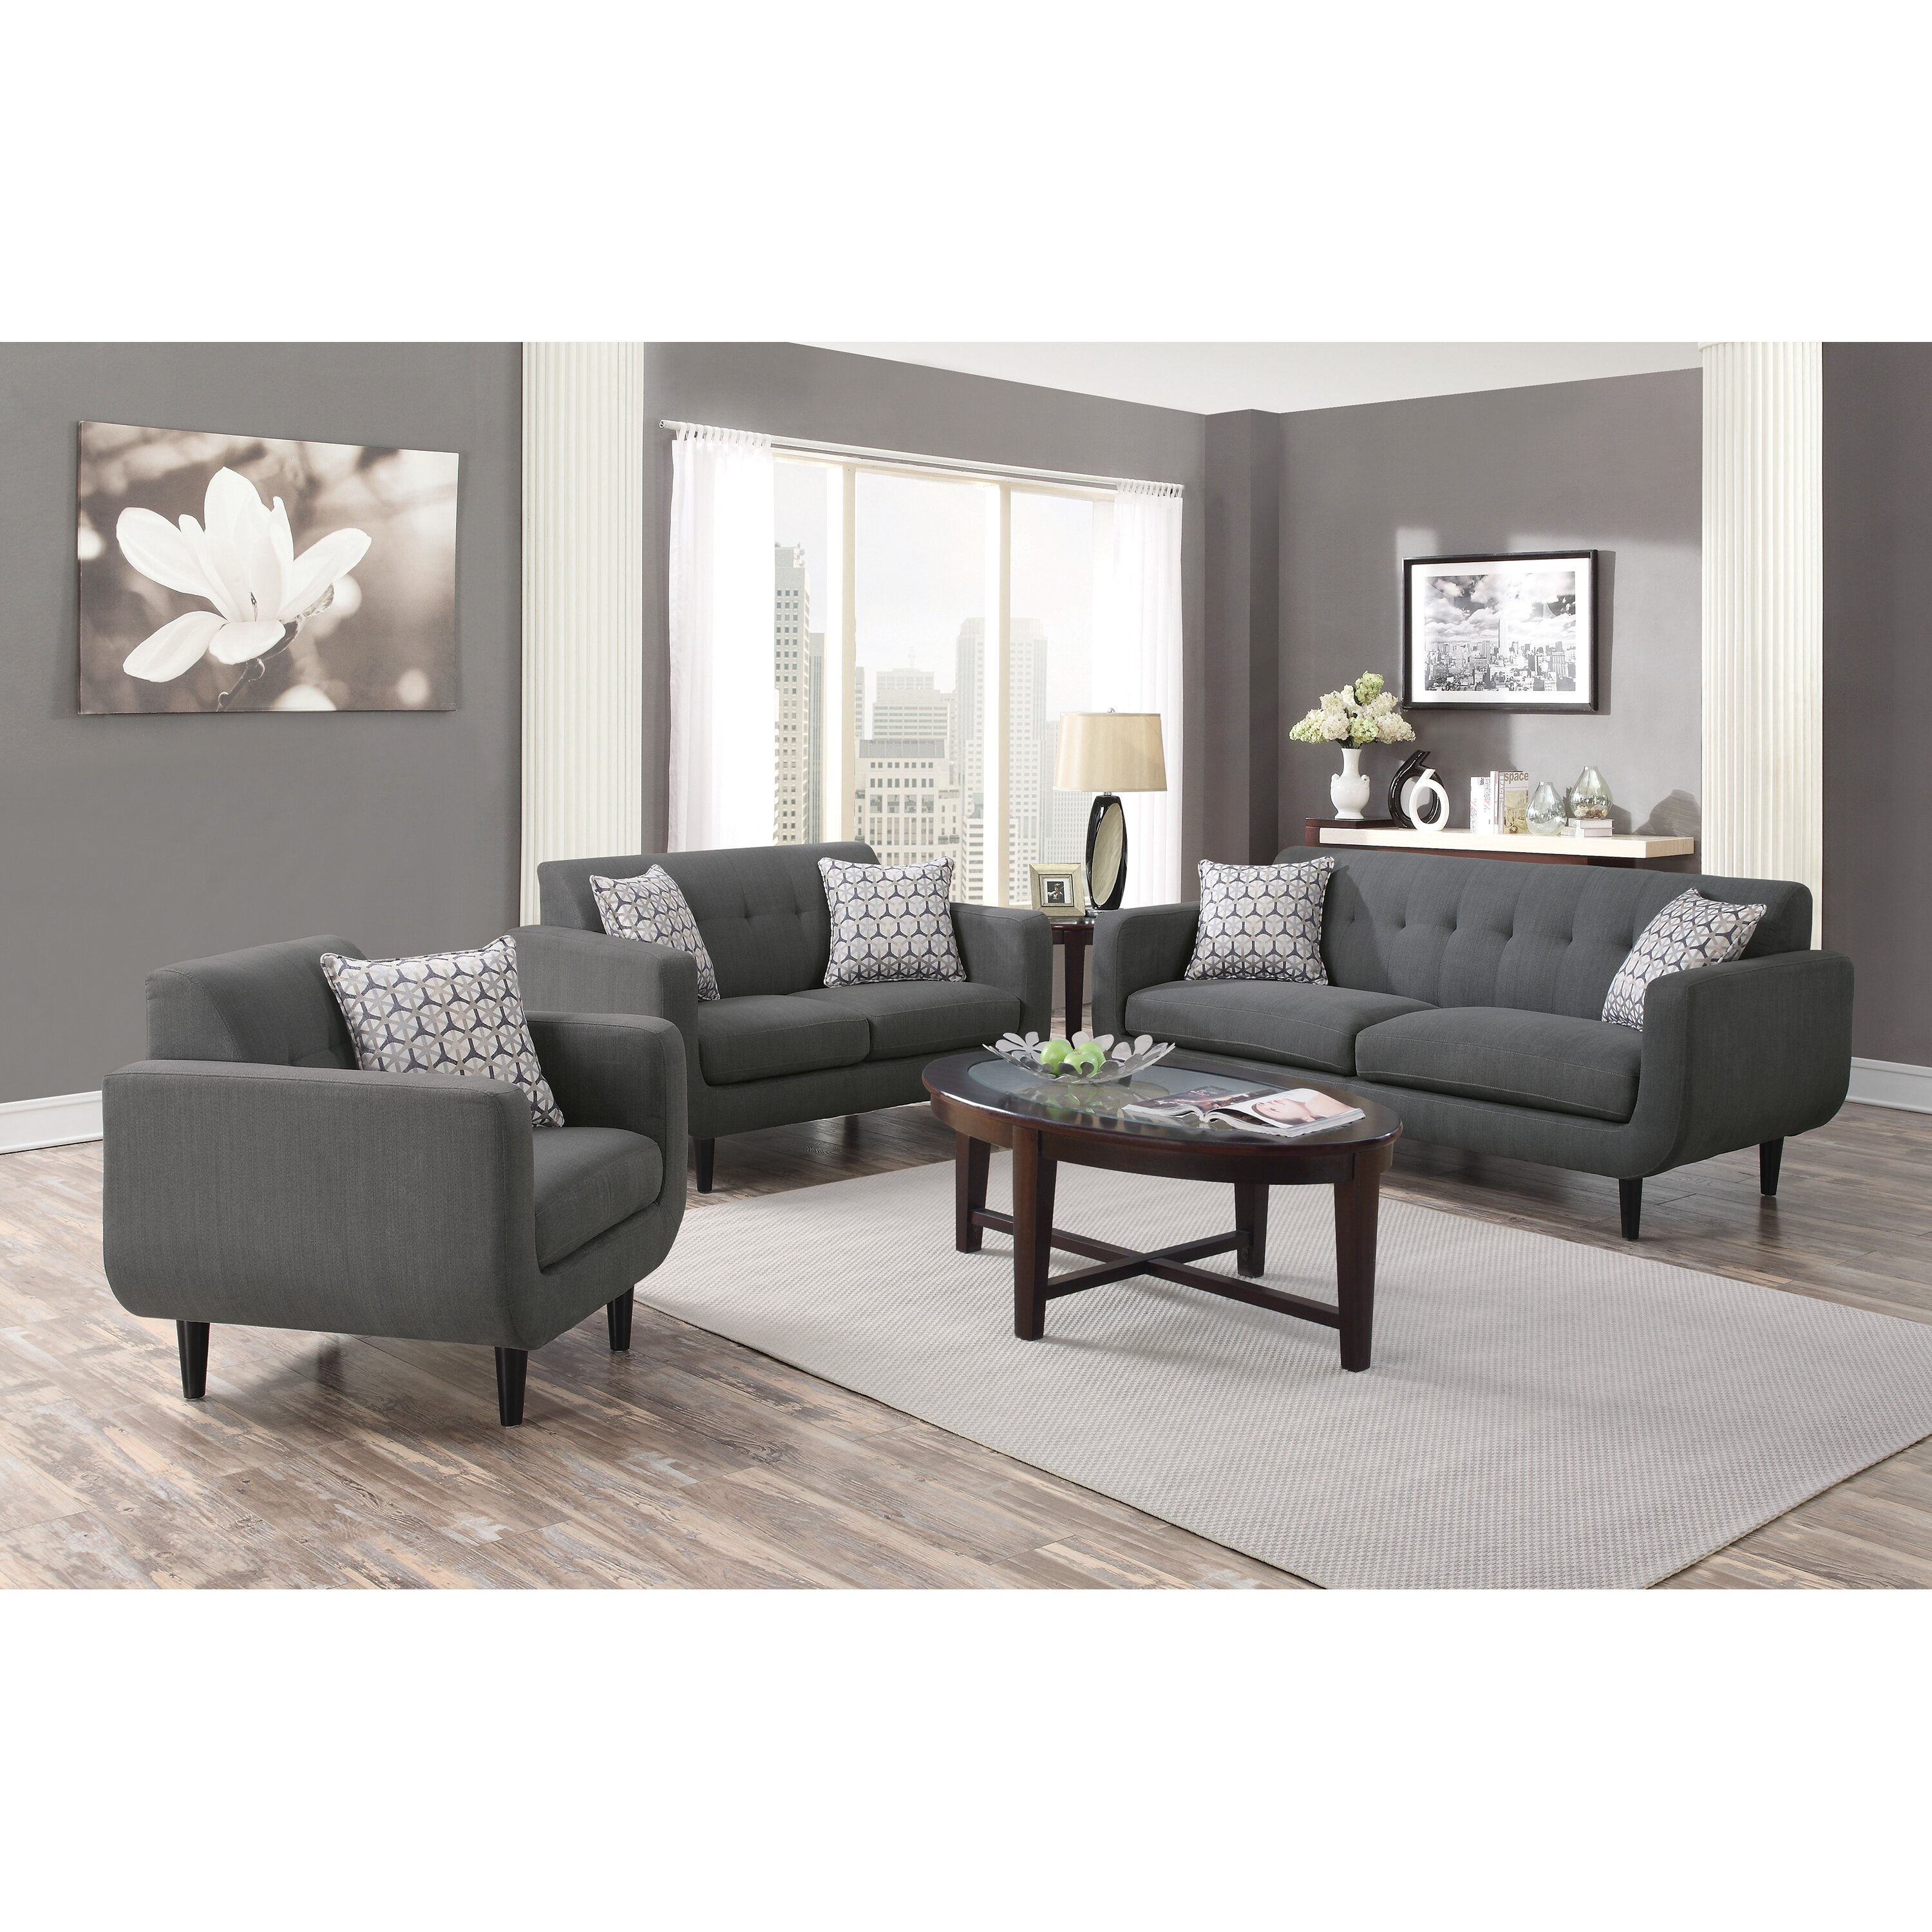 Wildon Home Stansall Living Room Collection Reviews